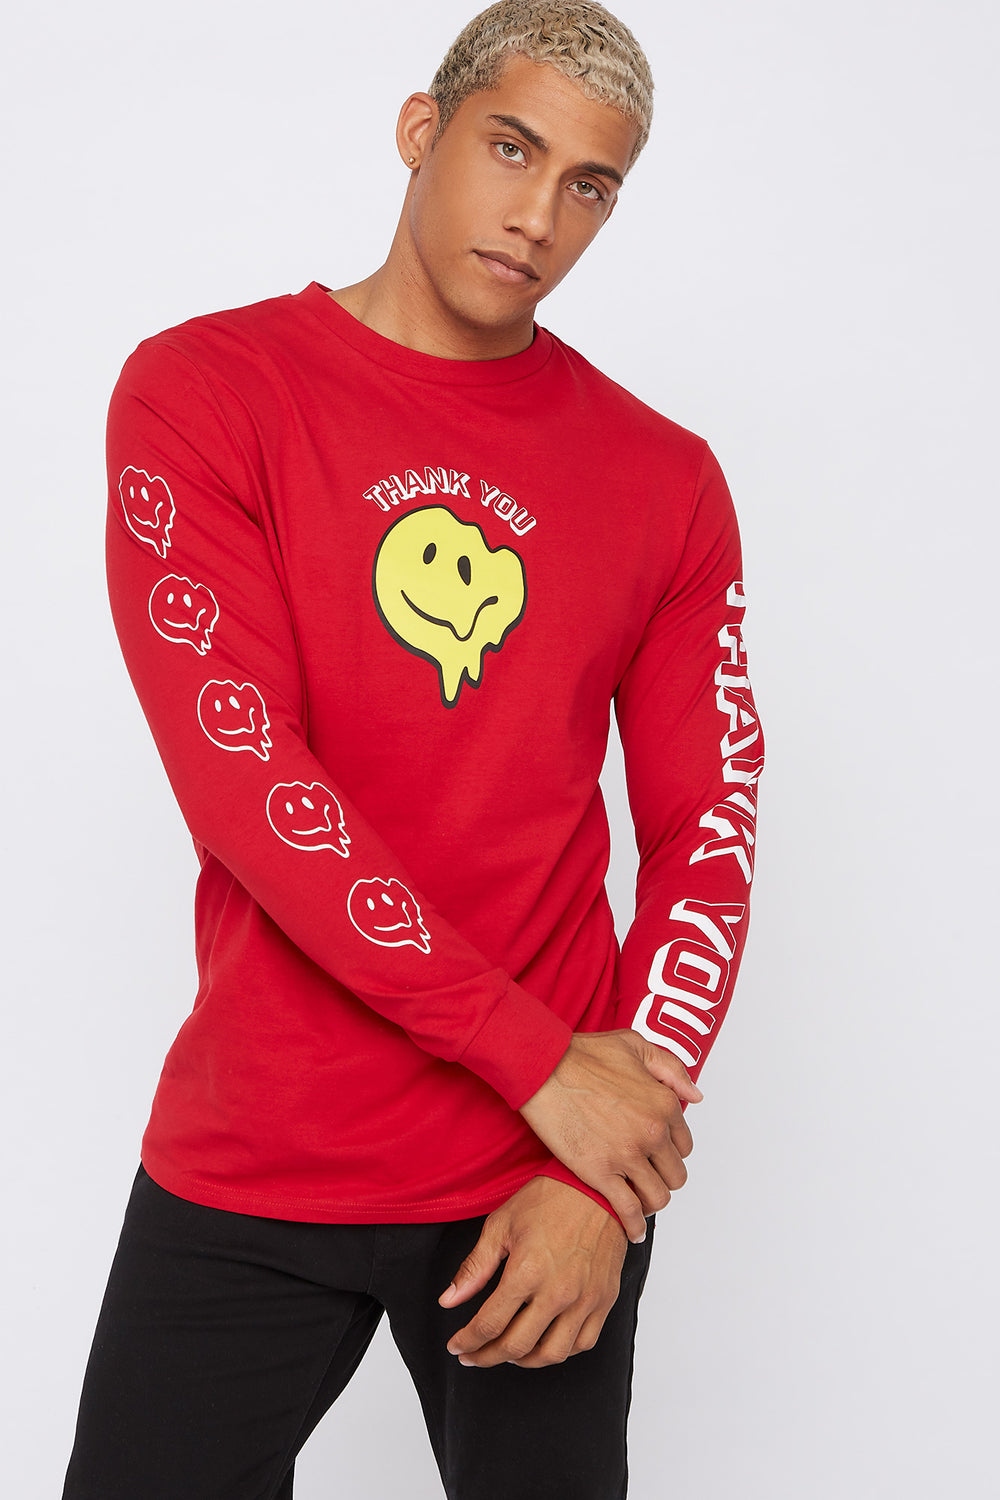 Thank You Smiley Face Sweatshirt Red